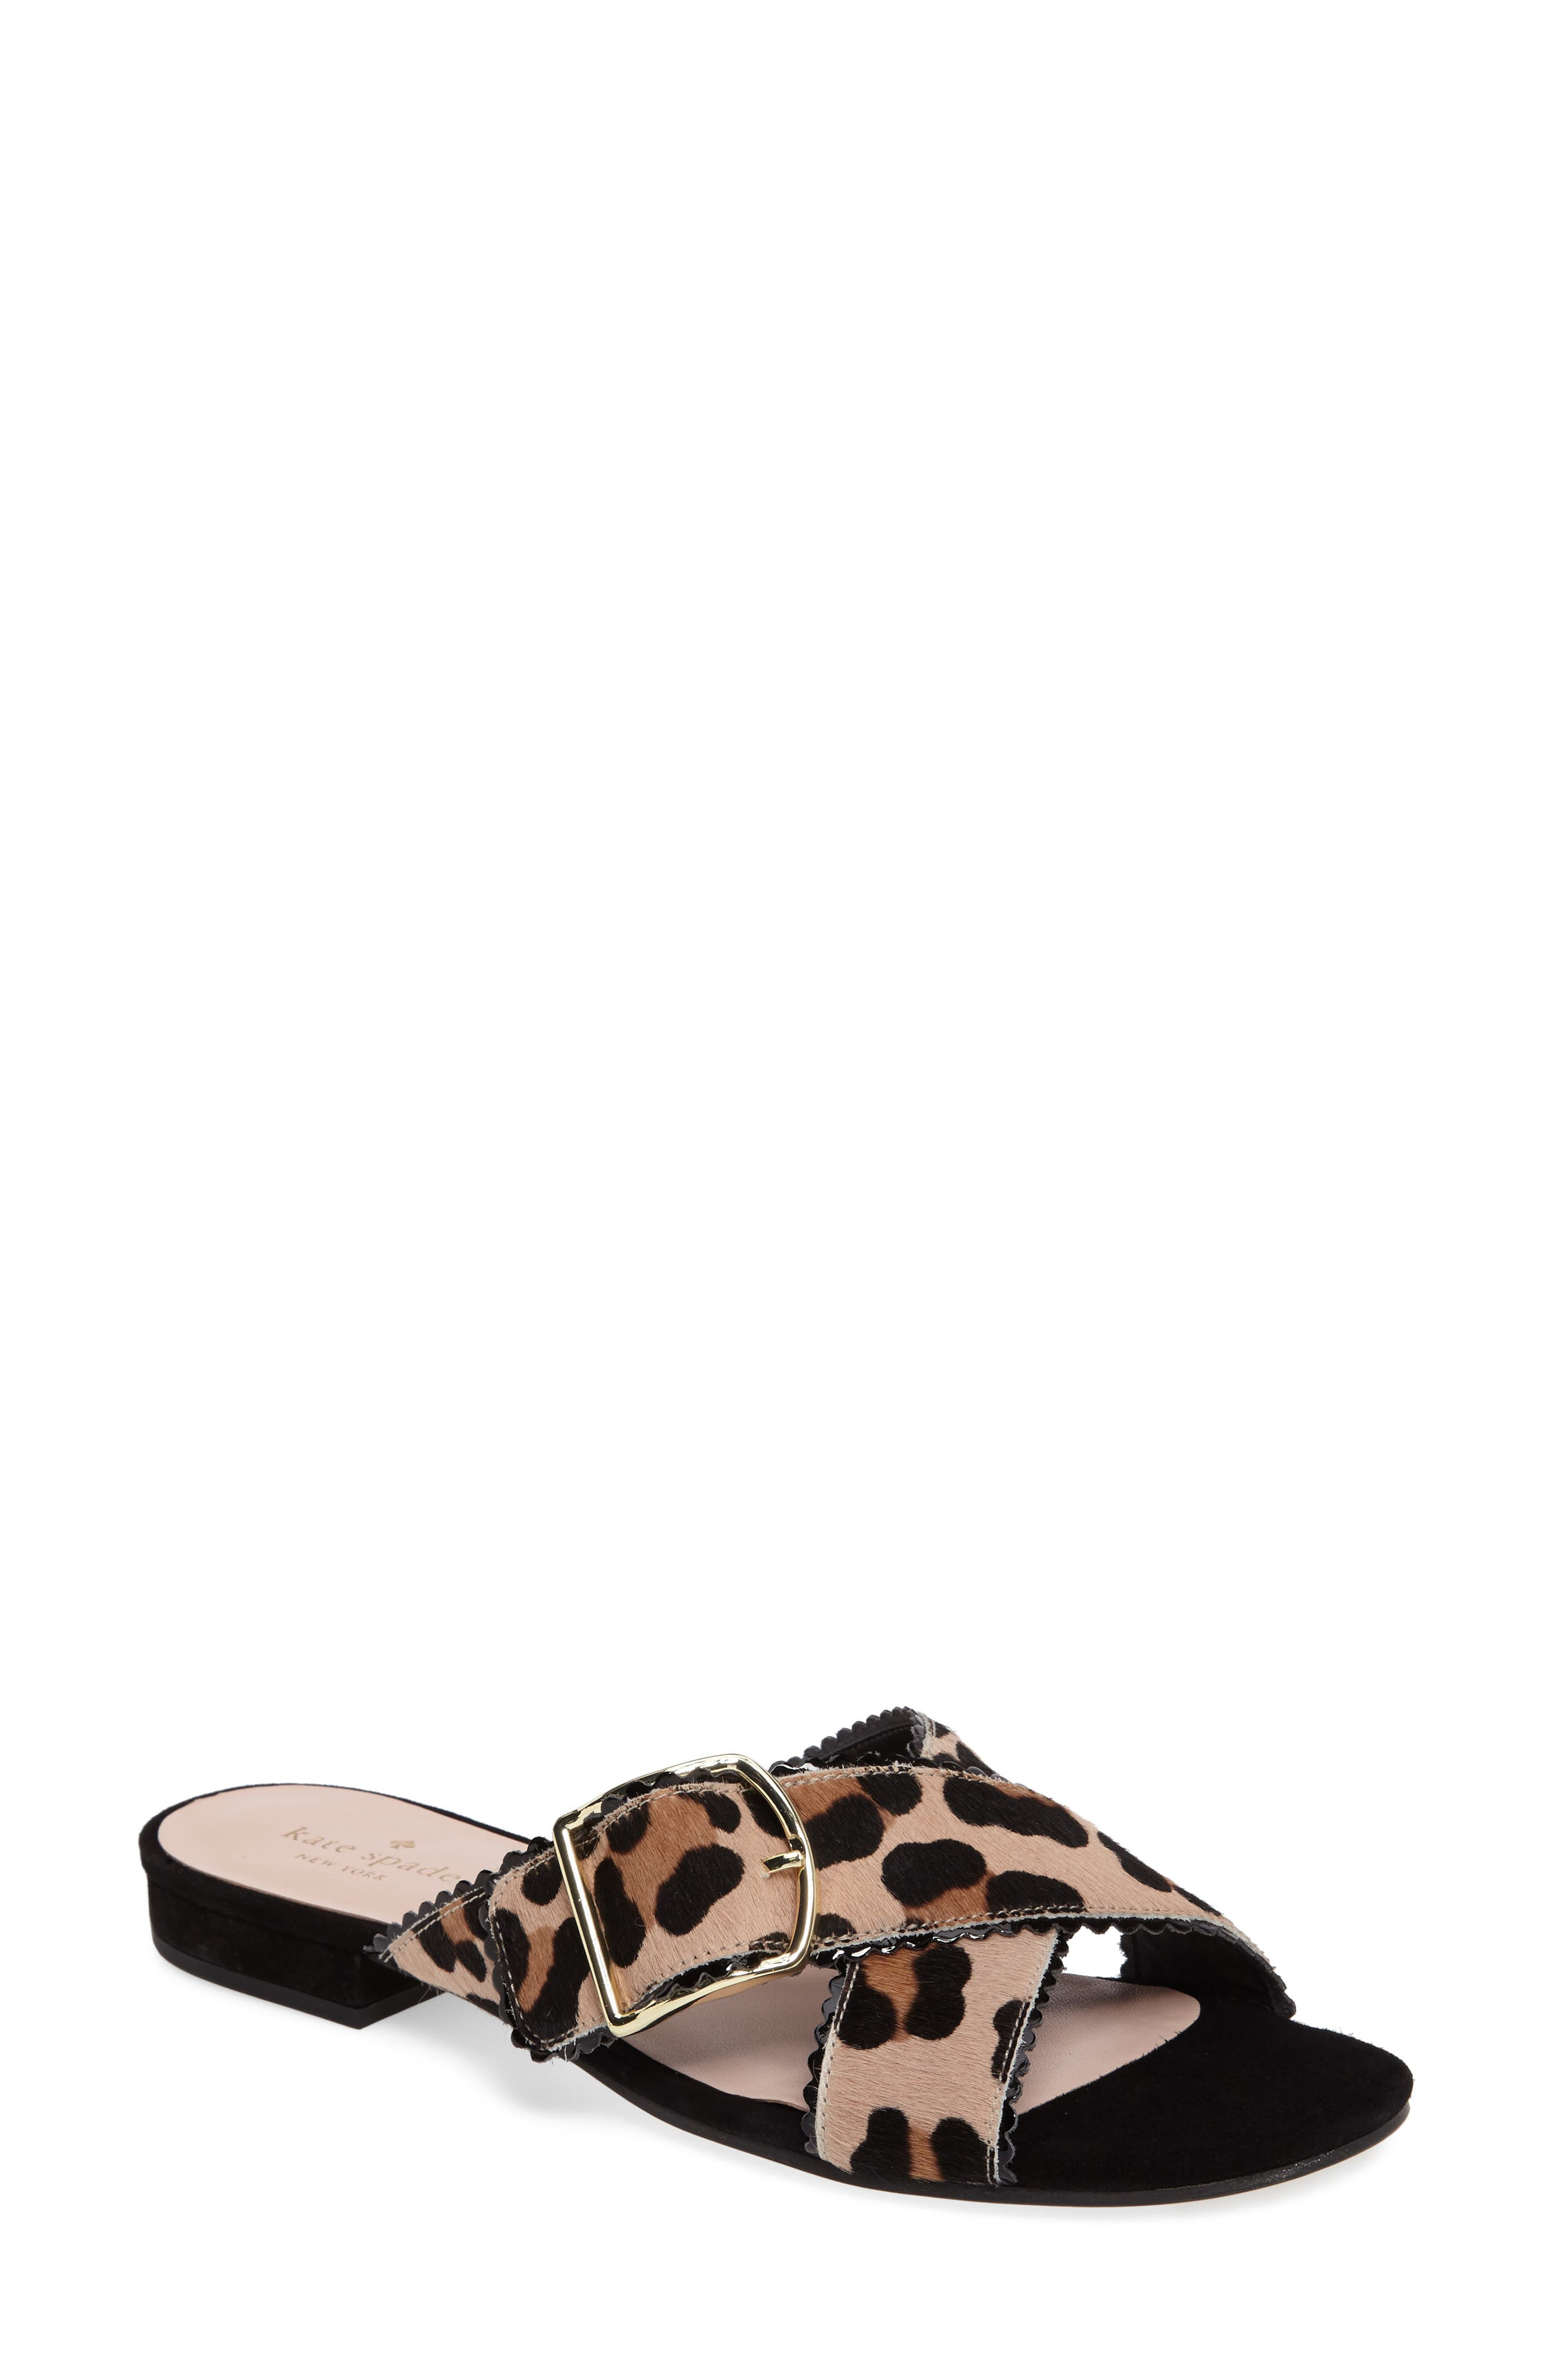 faris sandal,                             Main thumbnail 1, color,                             Blush/ Fawn Leopard